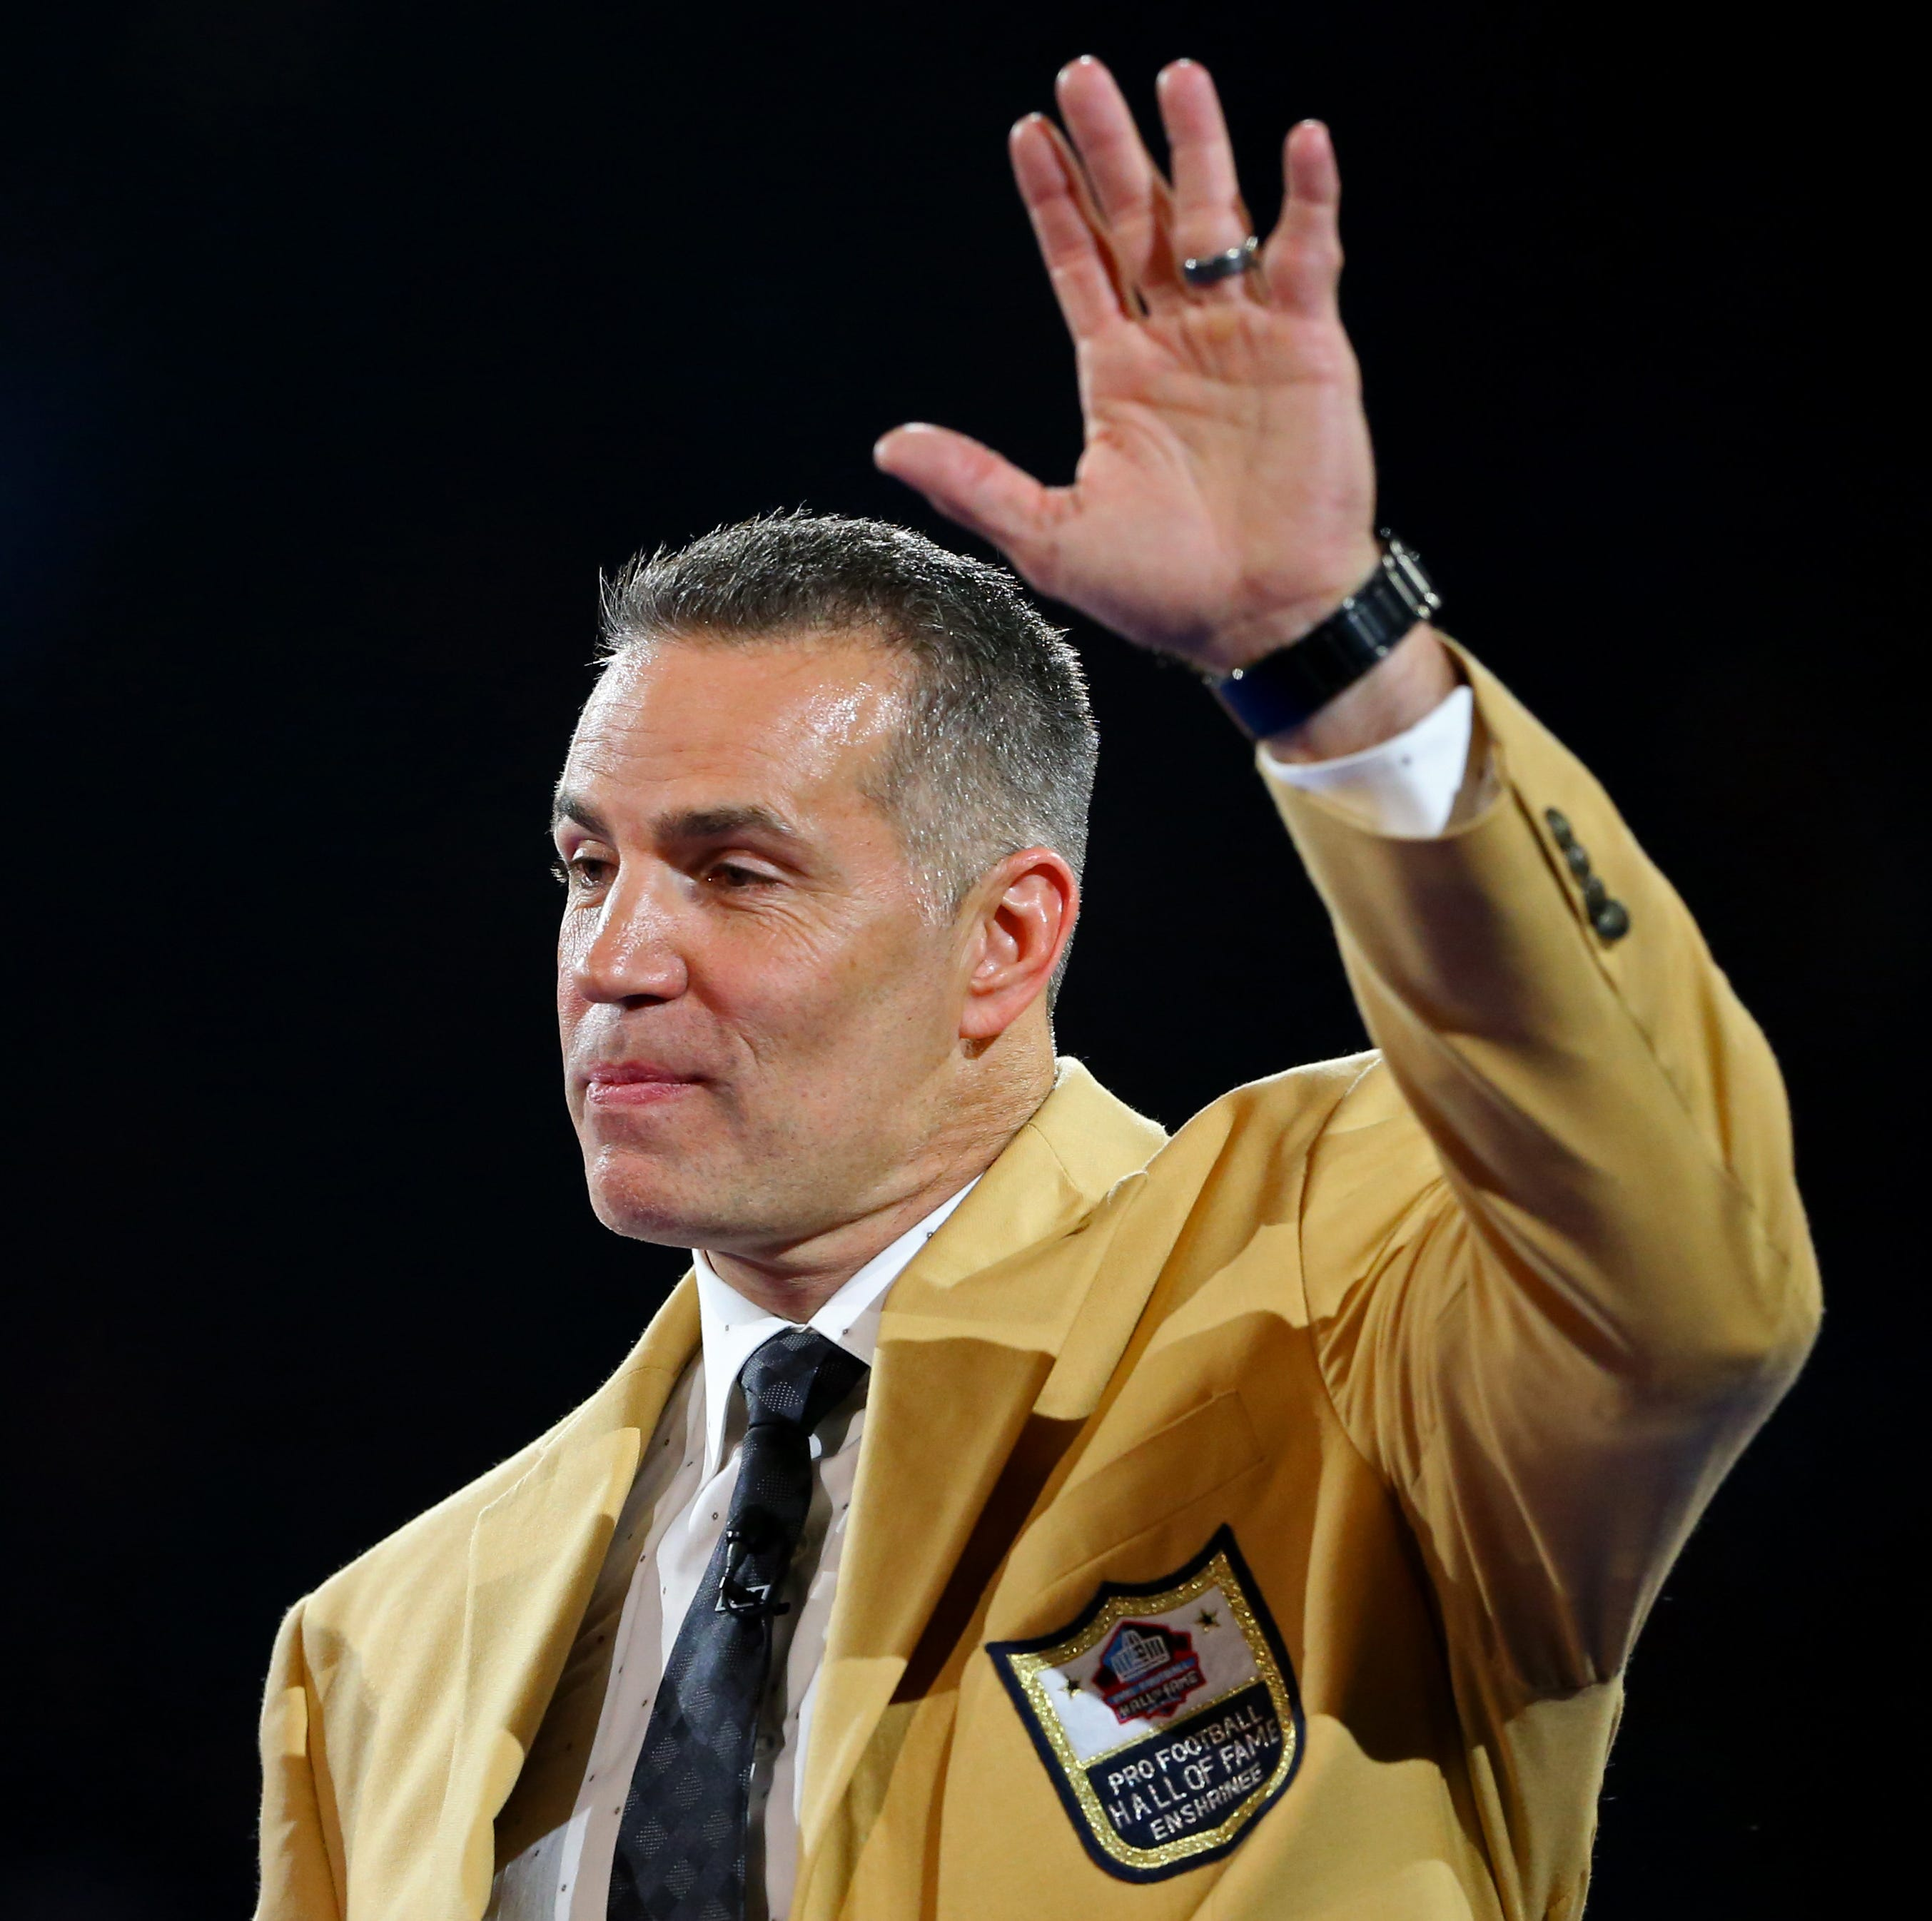 Des Moines Register Sports Awards to feature Iowa legend Kurt Warner this June